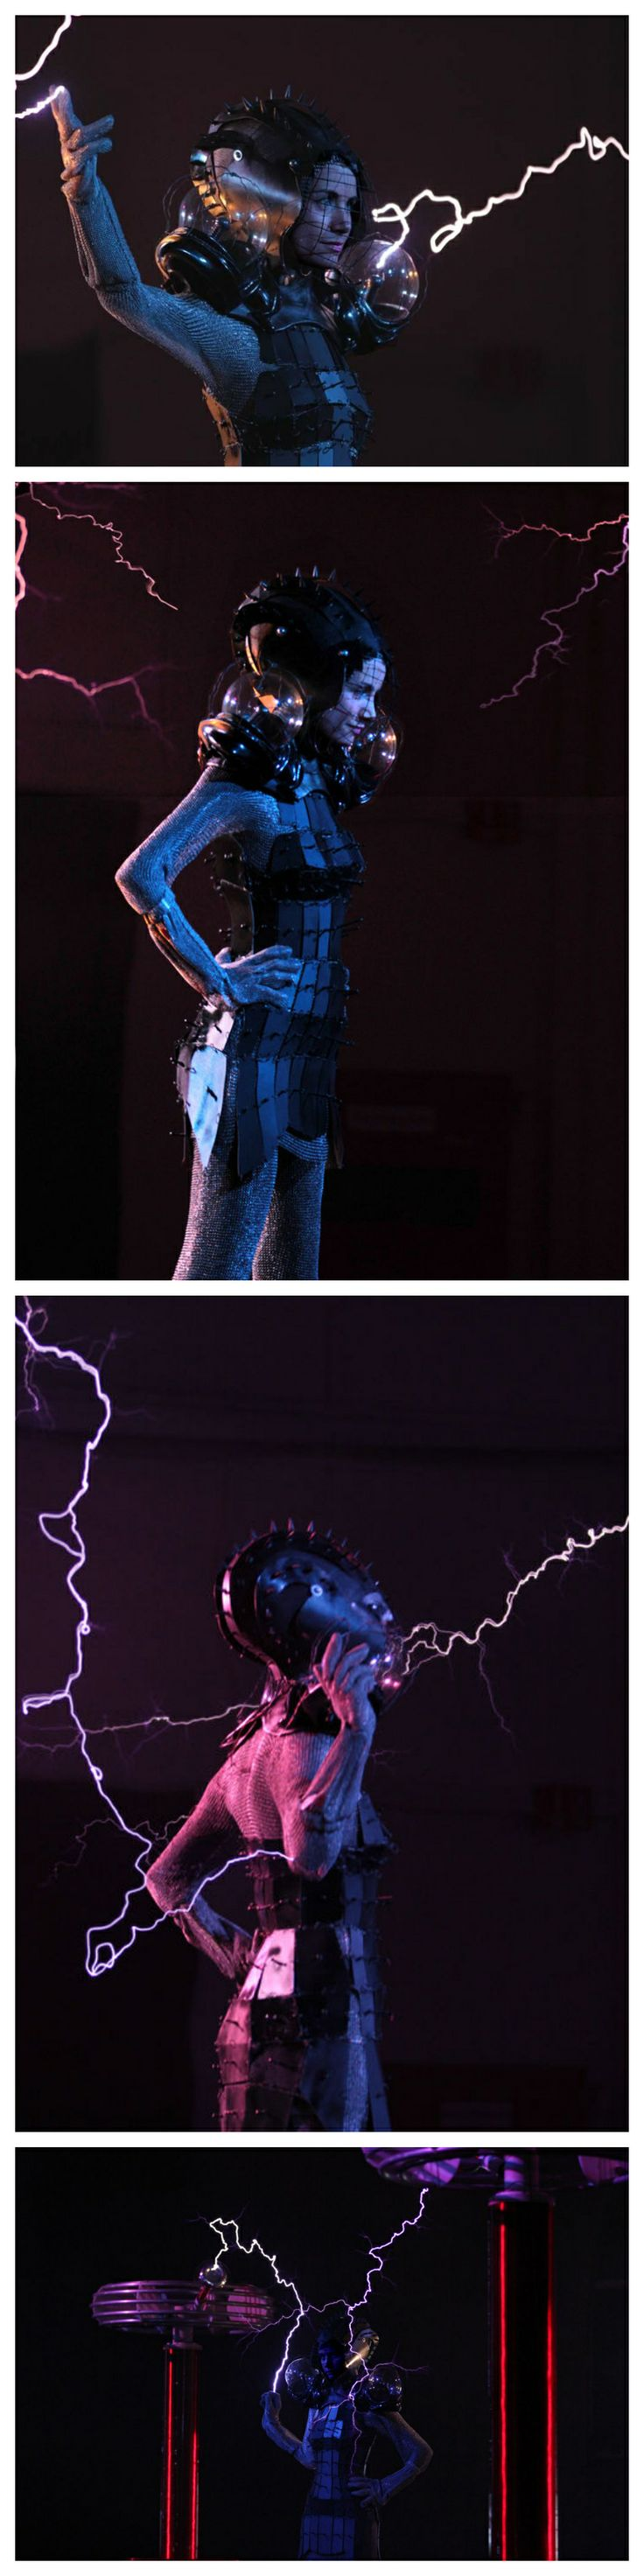 How to be Fashionably Struck by Lighting - Metal Plated Faraday Cage Dress with Spiked Helmet and Plasma Ball Shoulder Pads #fashion #science #tesla_coils